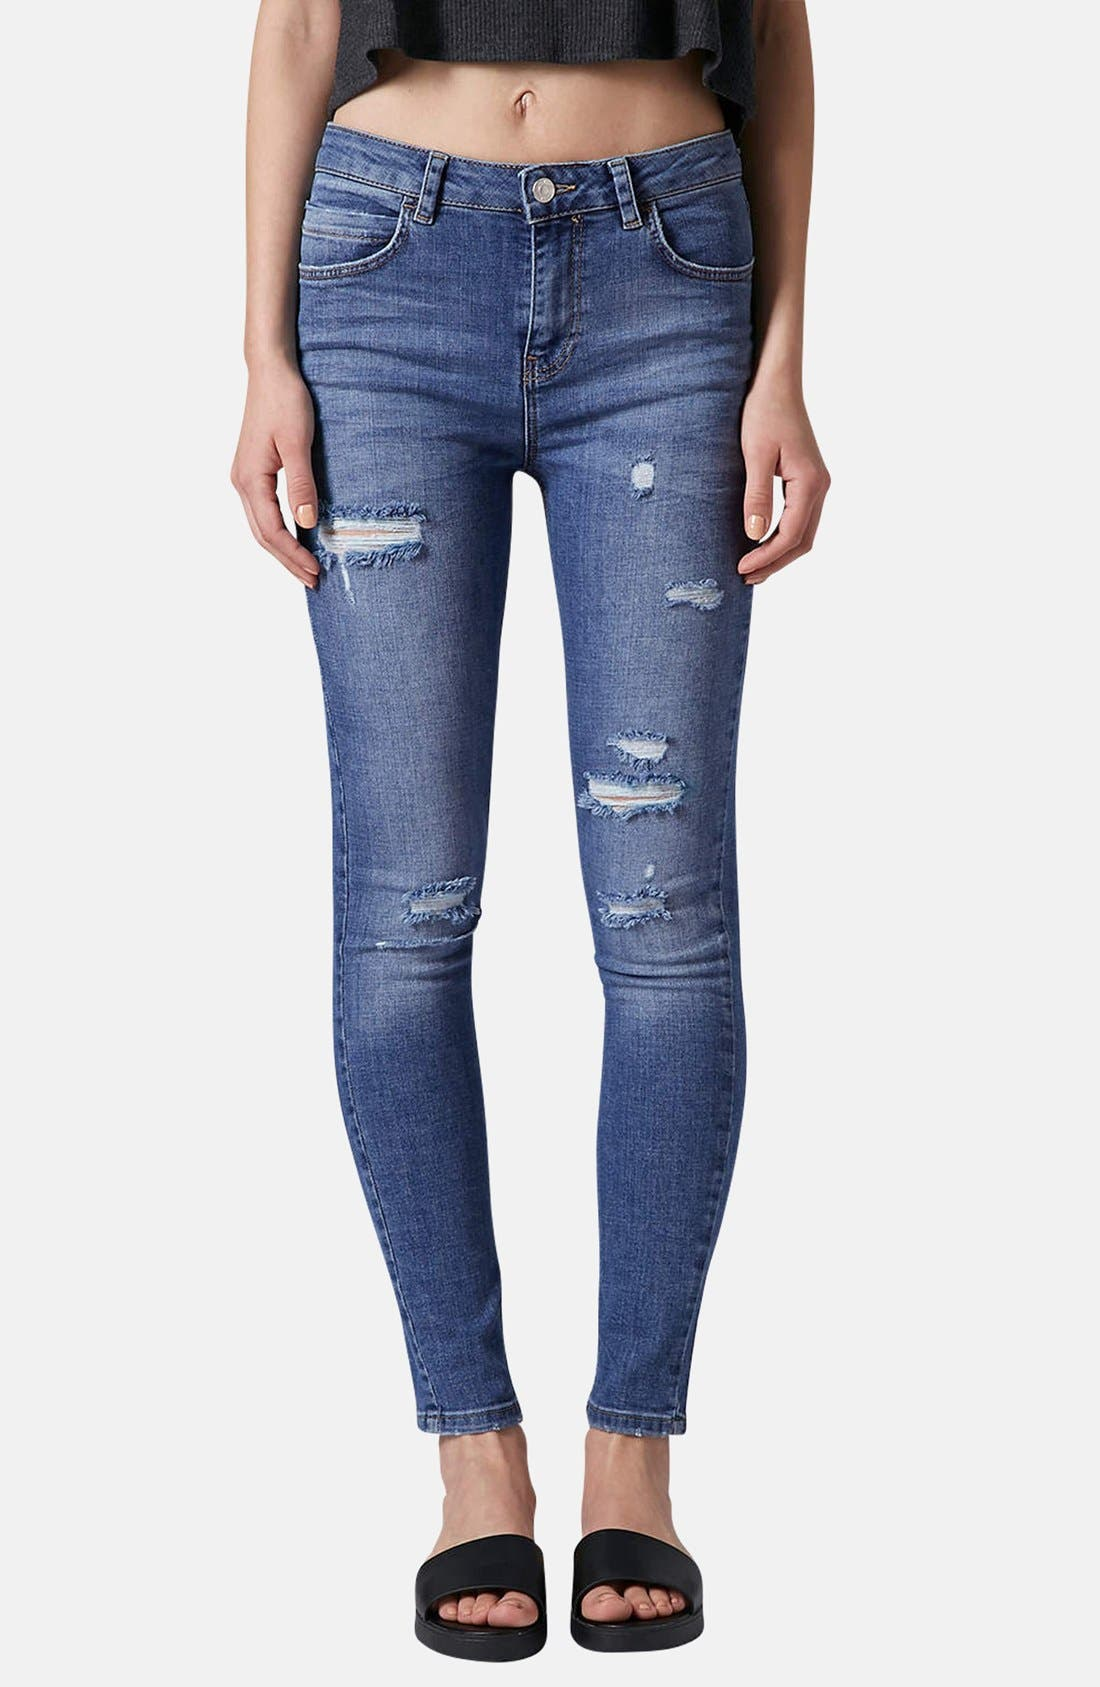 Alternate Image 1 Selected - Topshop Moto Destroyed Skinny Jeans (Mid Denim) (Short & Regular)